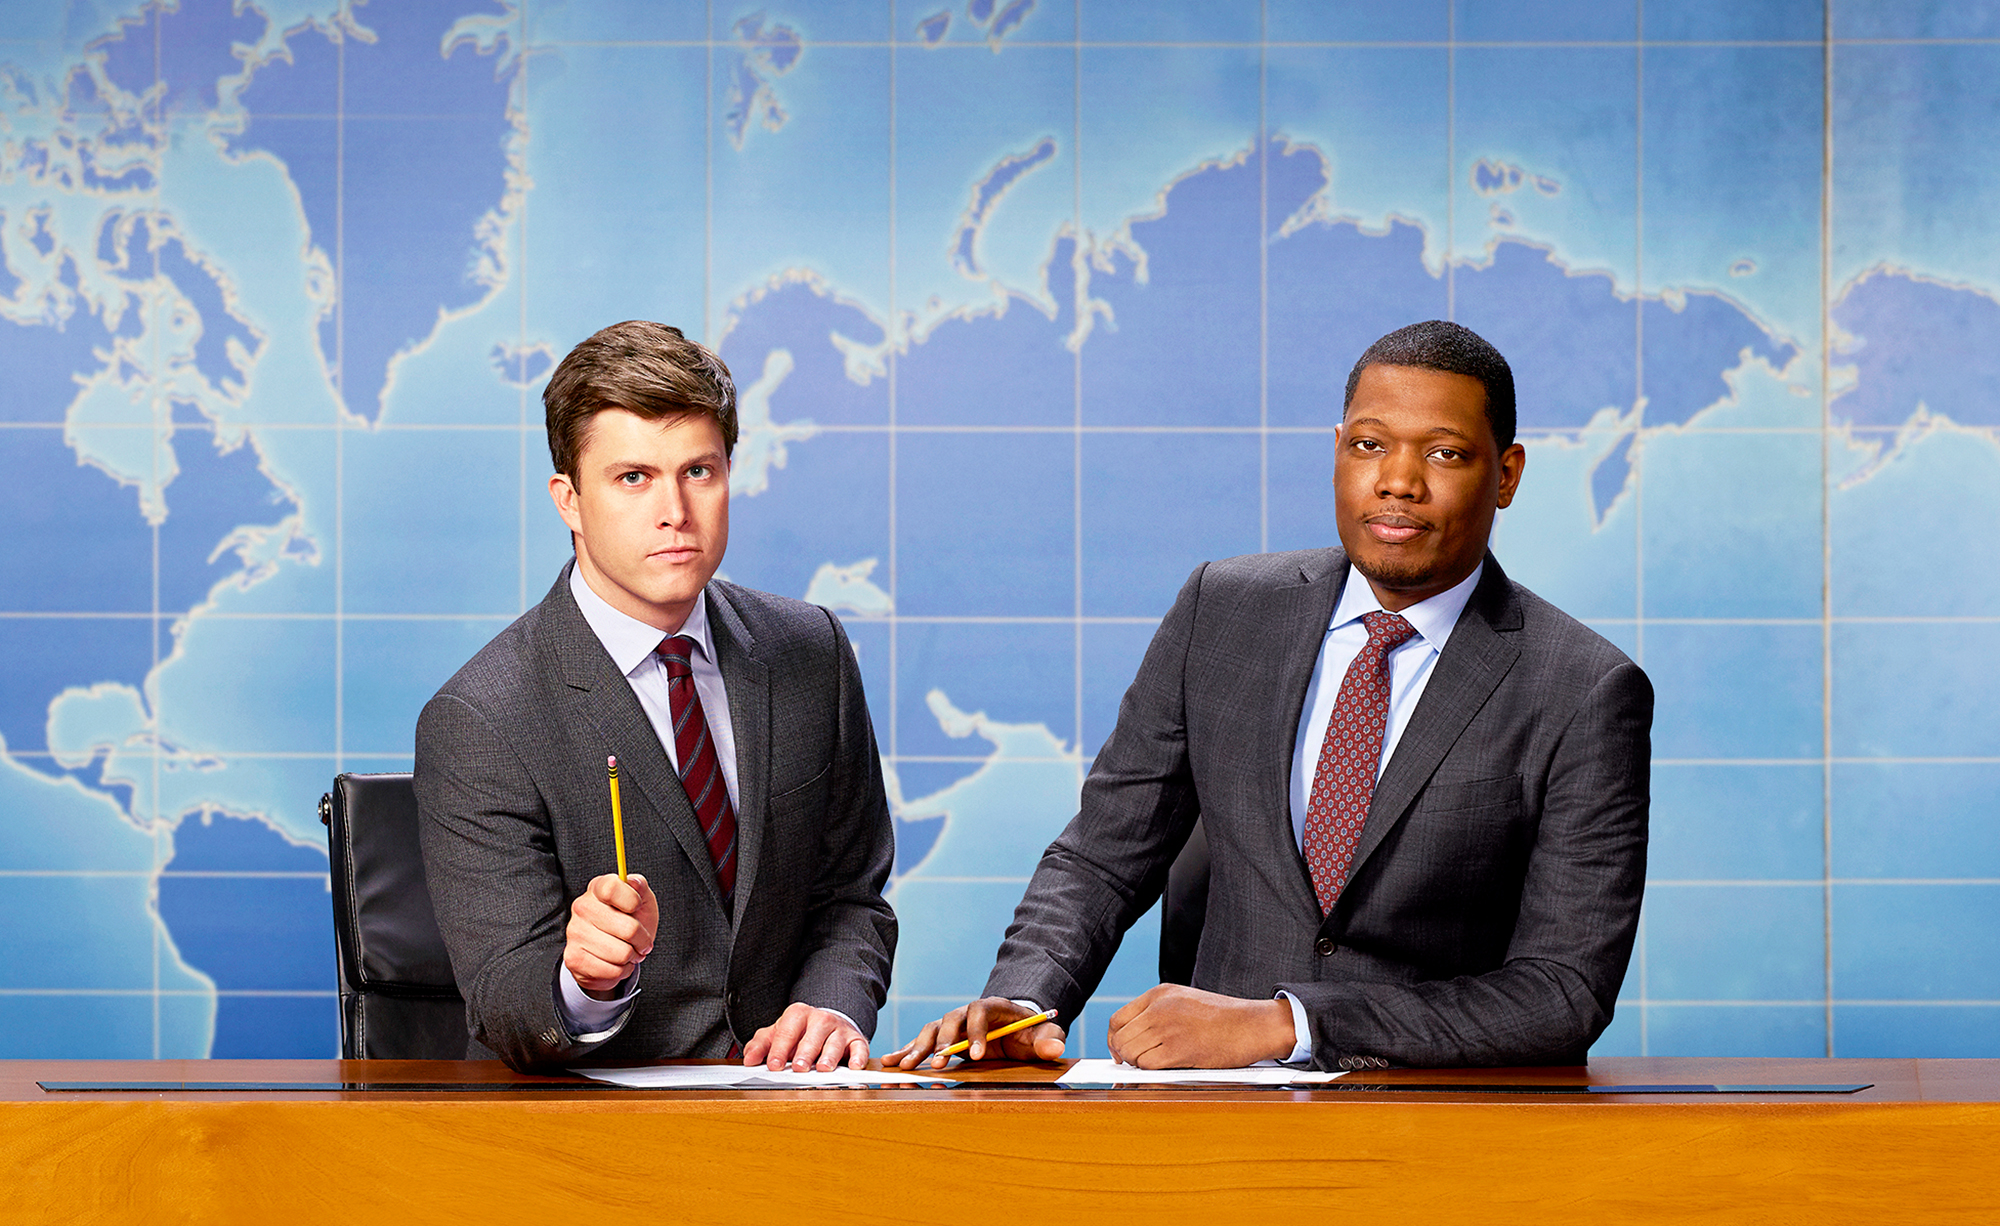 'SNL' Stars Colin Jost and Michael Che to Host 2018 Emmys